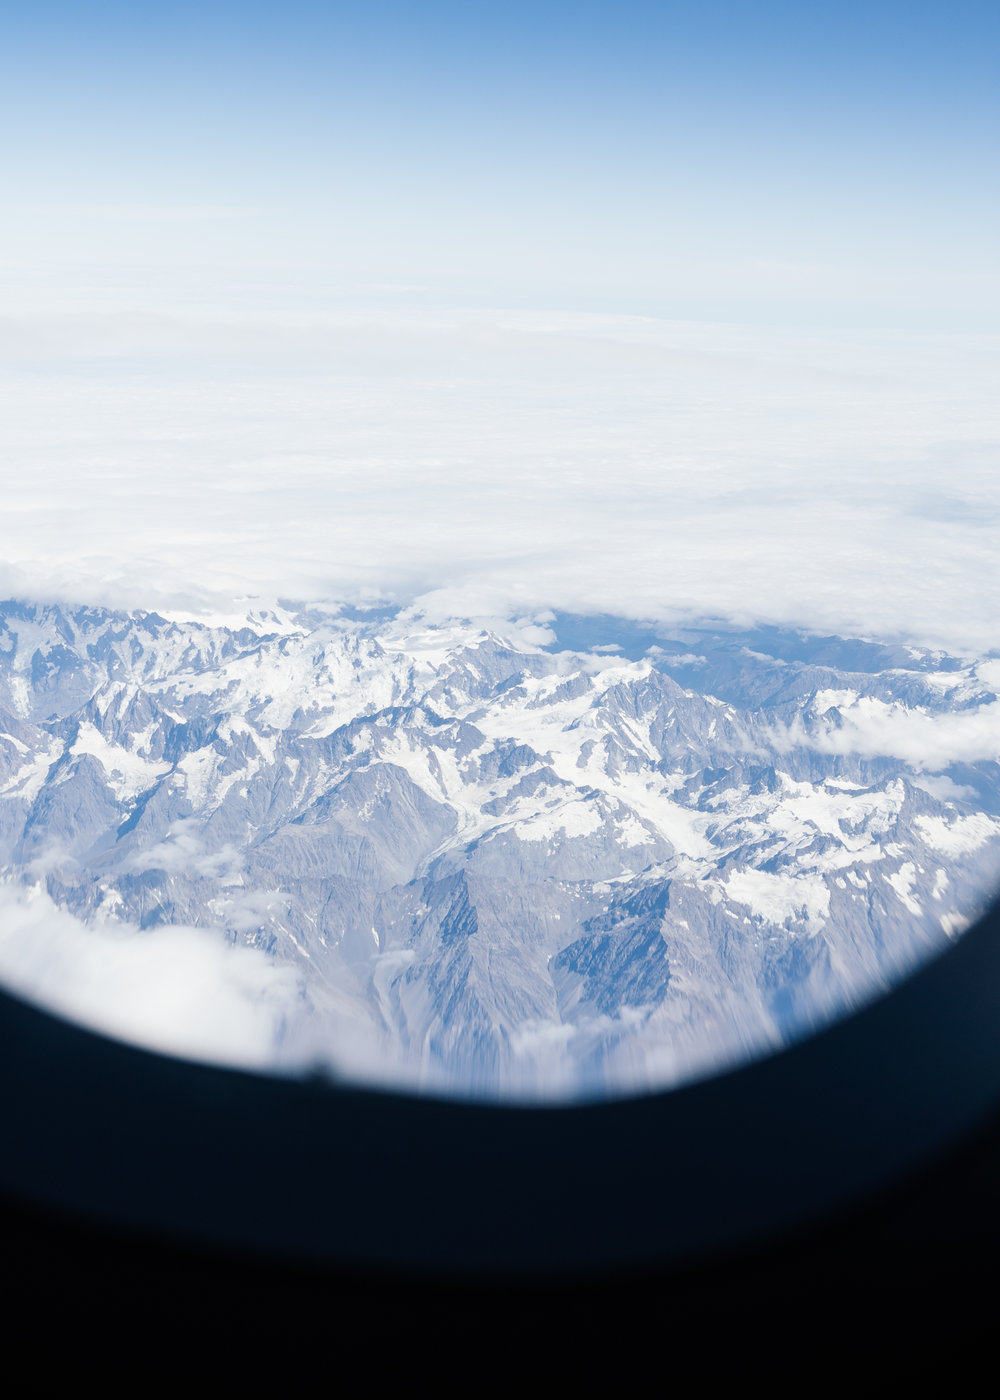 Snow never leaves Queenstown. Even in high summer, the mountain tops sprinkled white makes for a stunning view from the window seat.